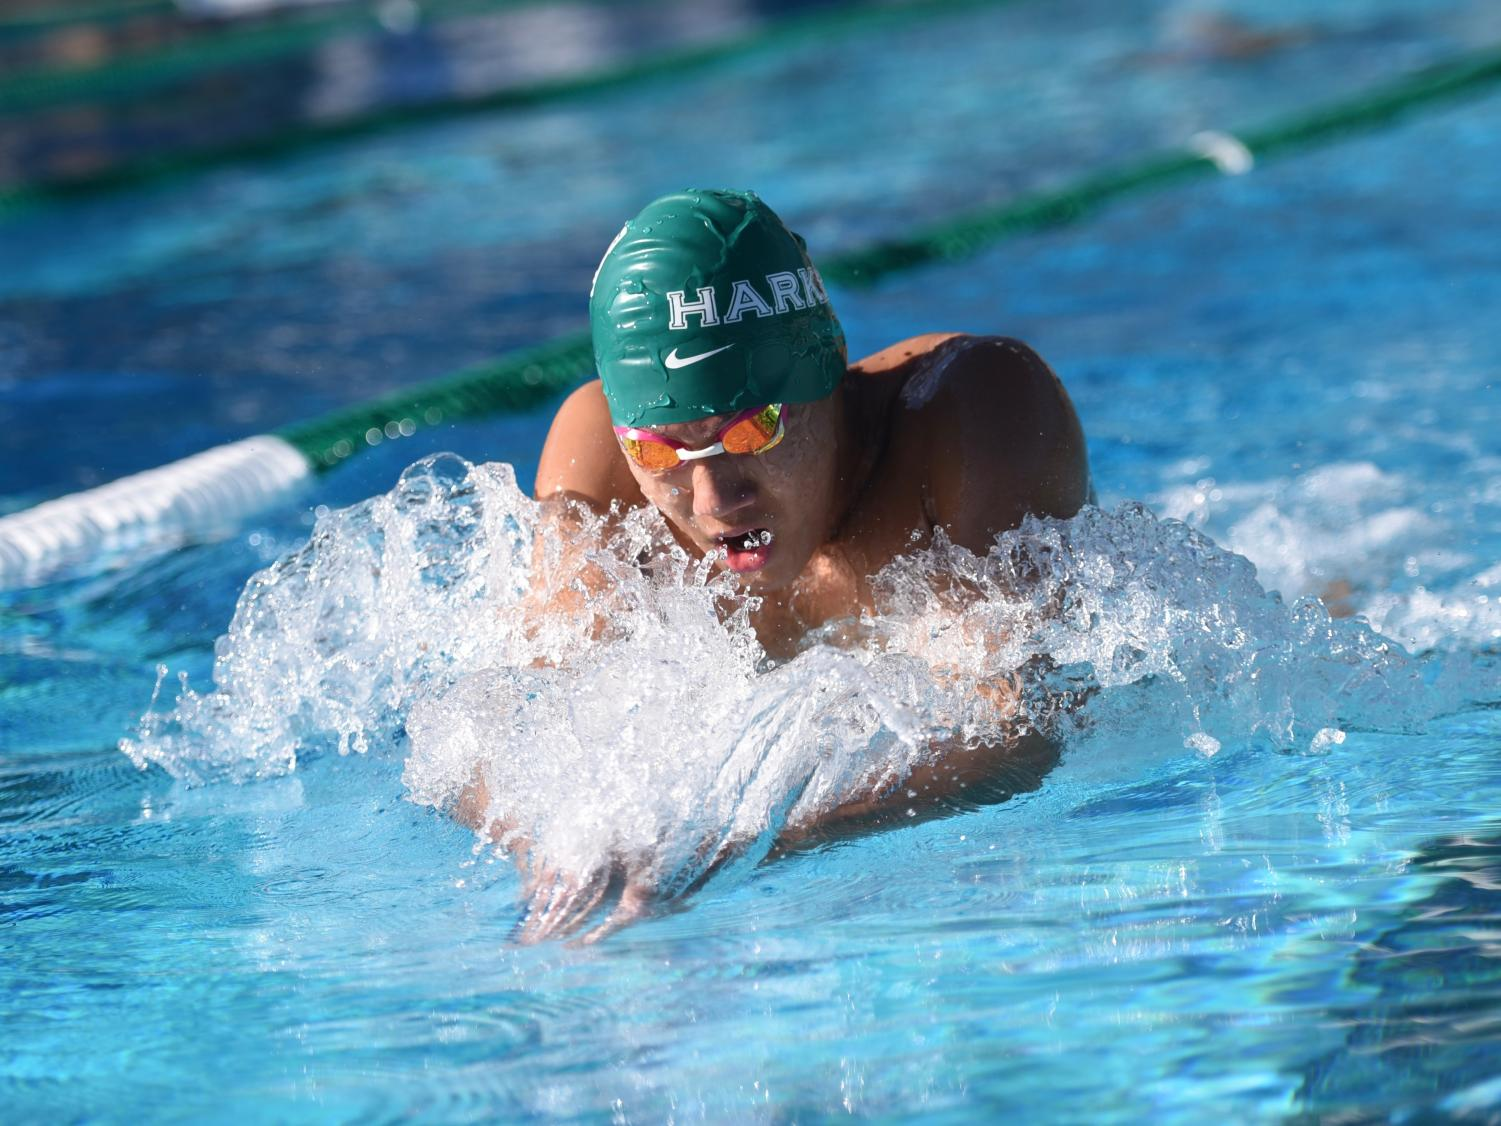 Andrew Chang (10) swims during the swim meet on Thursday. Matthew placed first in the 200 meter and 500 meter freestyle.